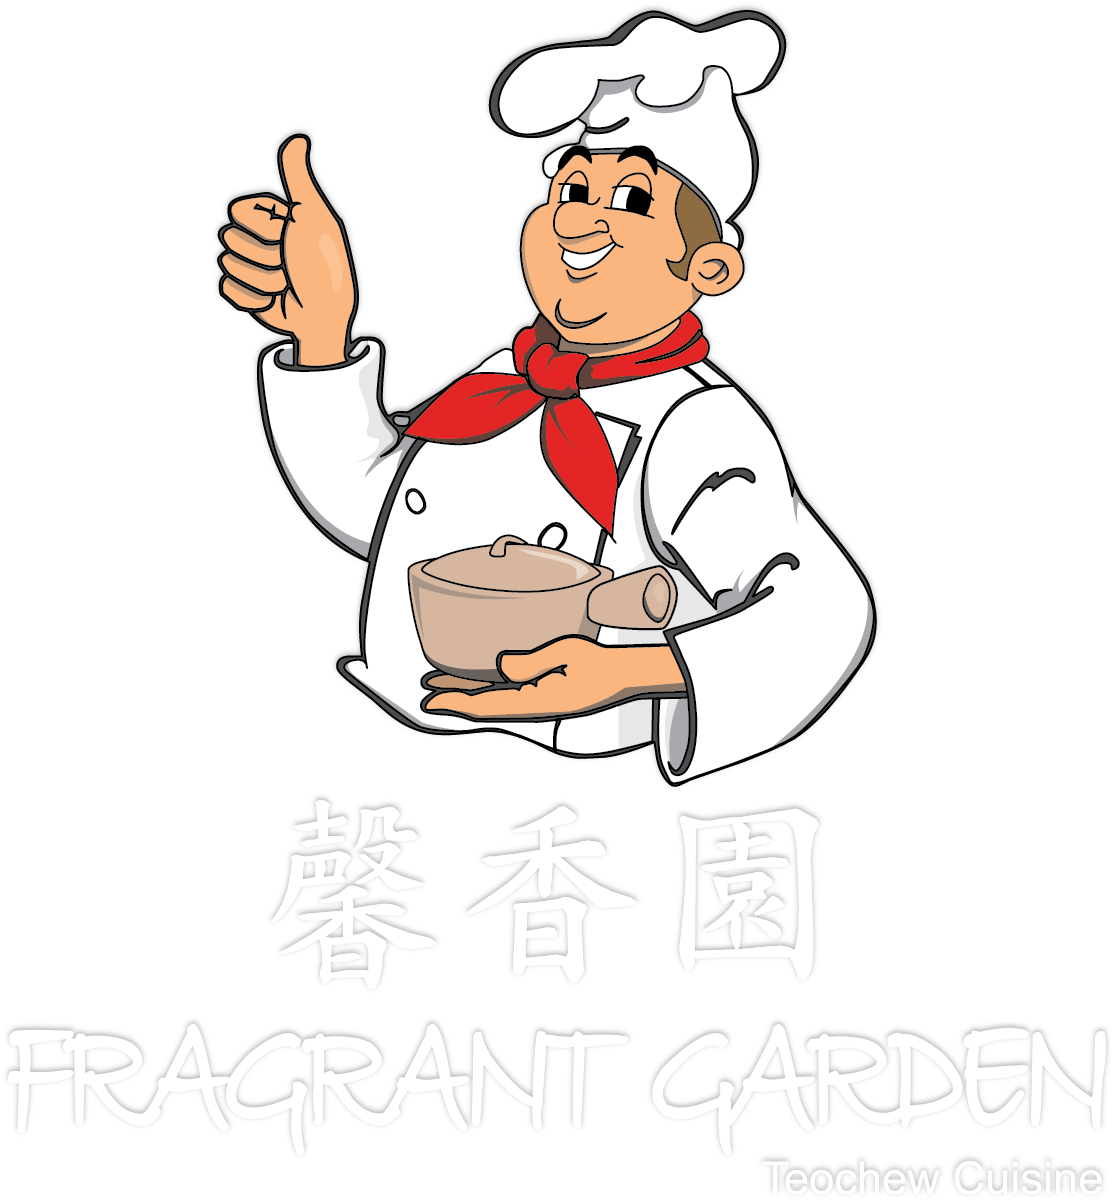 Fragrant-Garden-logo-Final-white-2